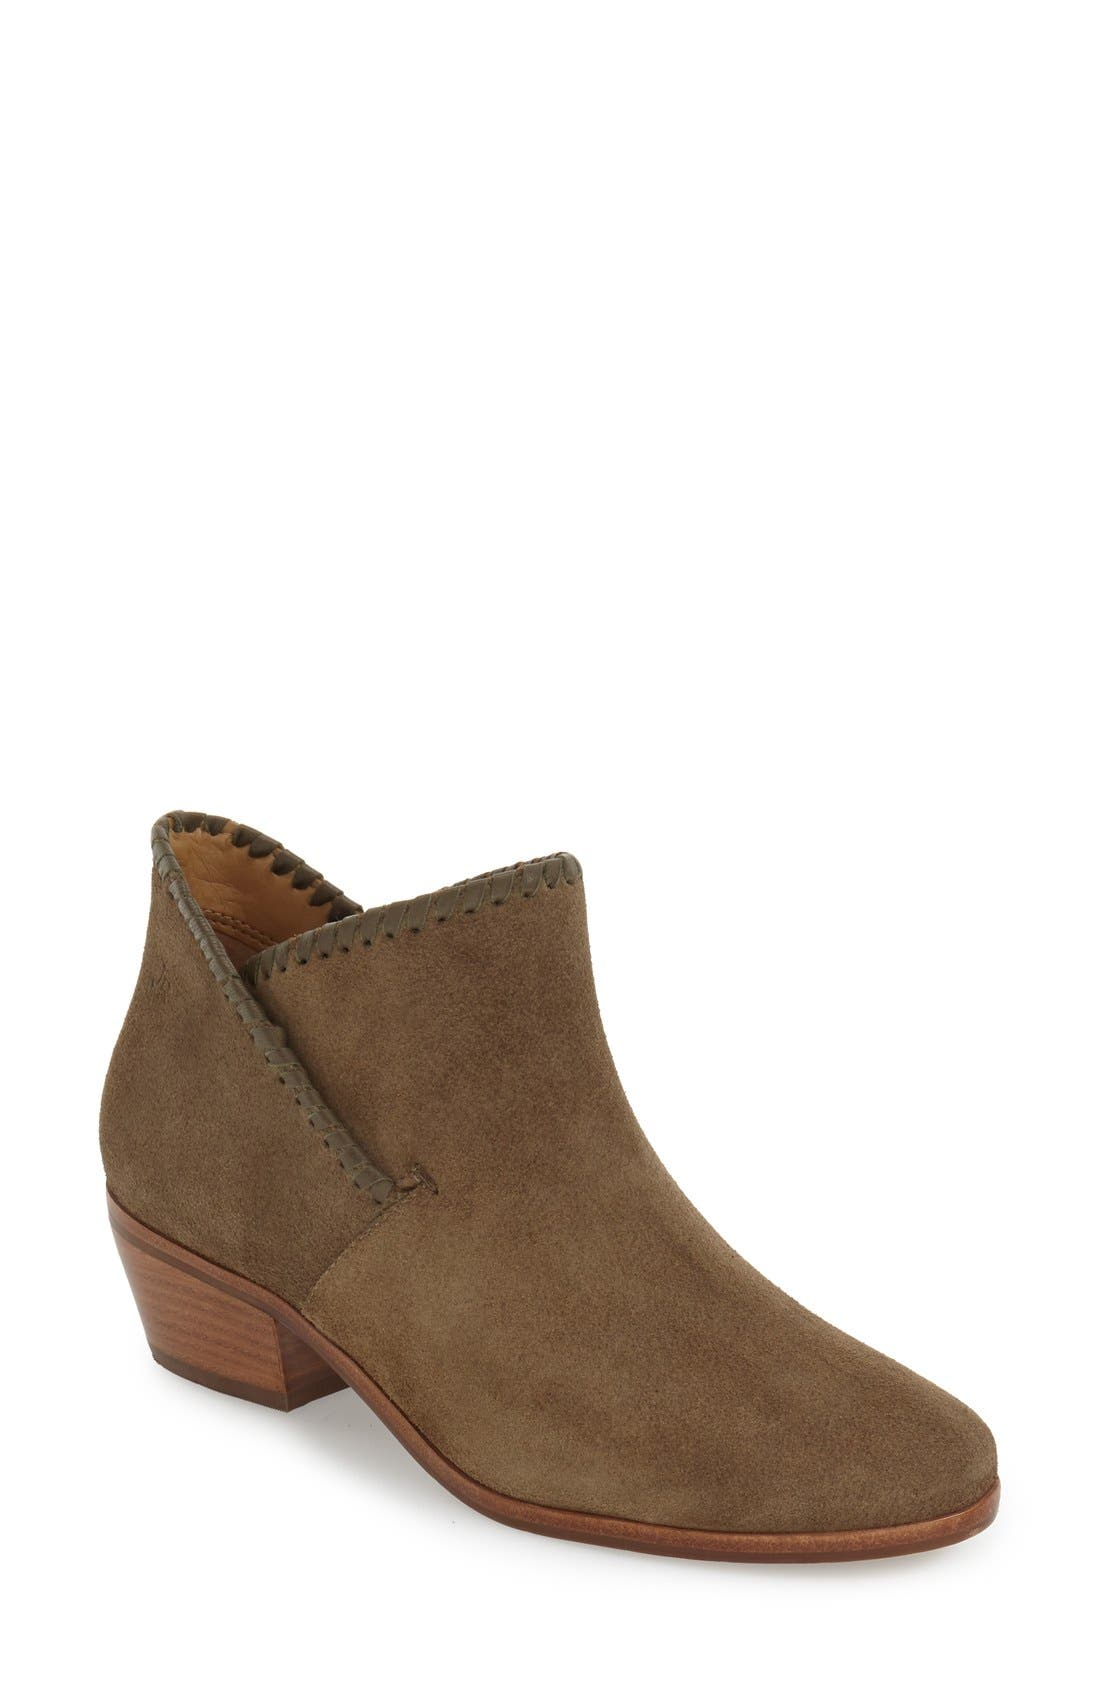 'Sadie' Bootie,                             Main thumbnail 1, color,                             Olive Suede